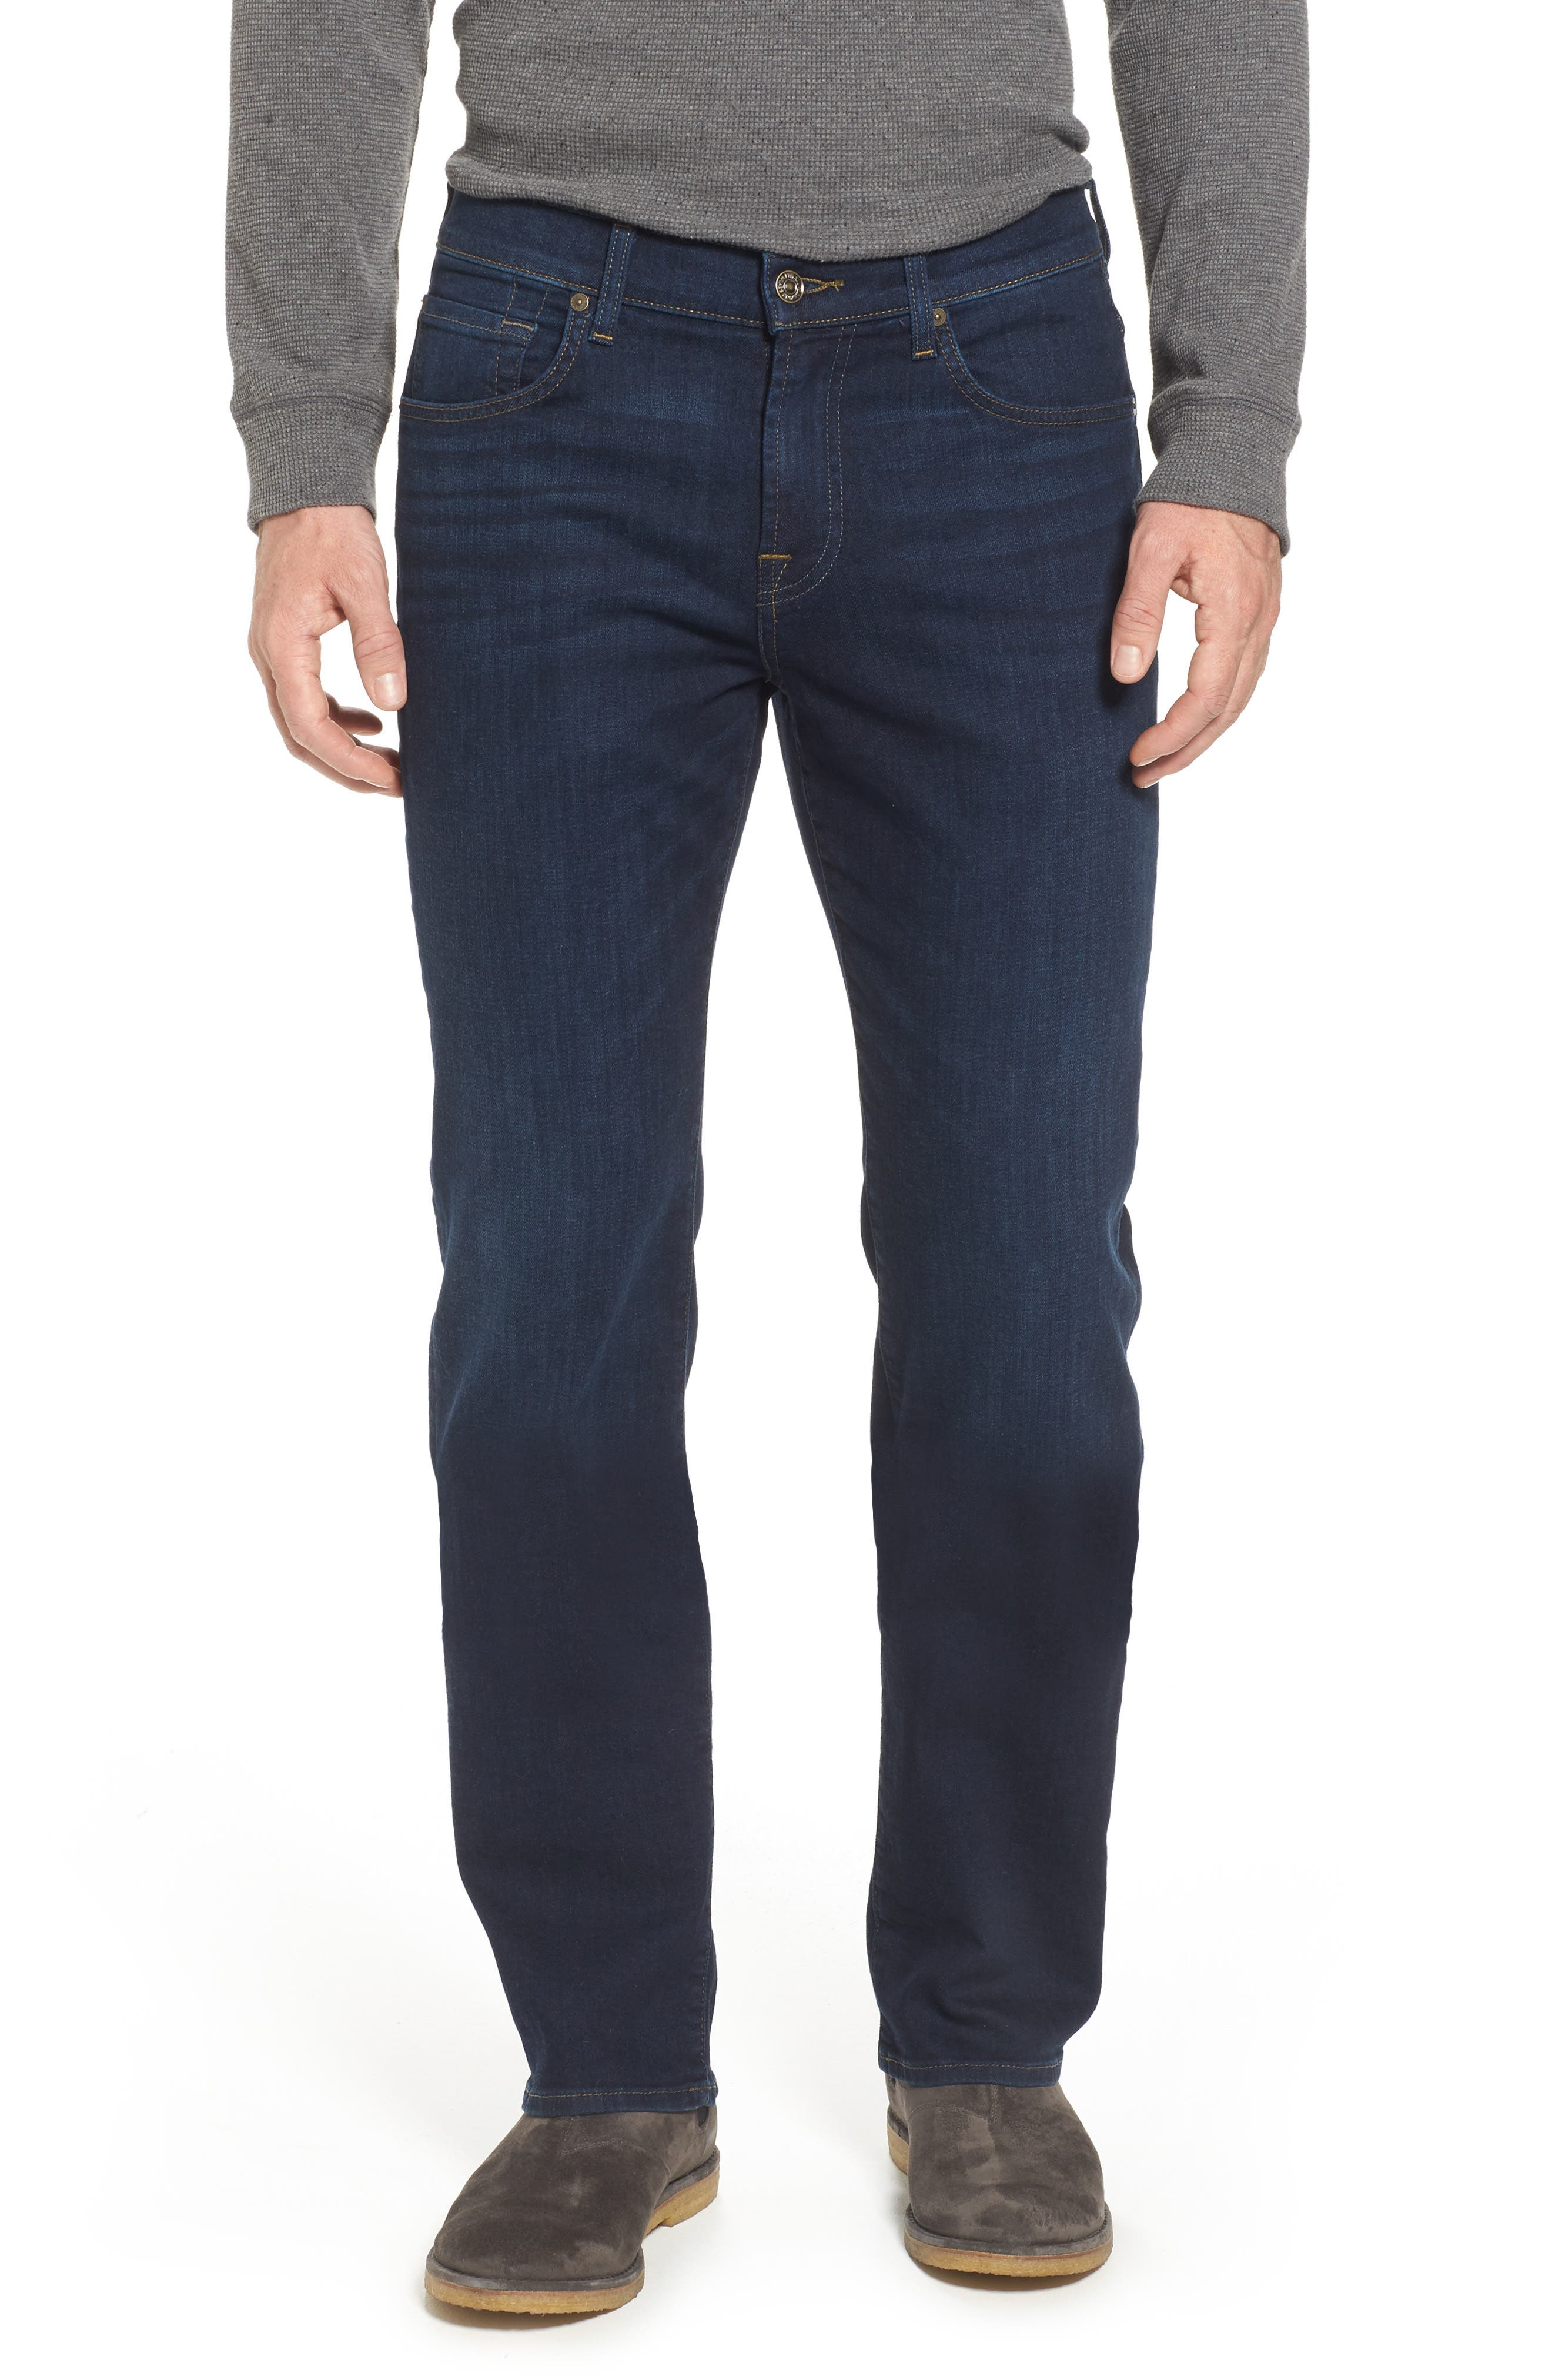 Austyn Relaxed Fit Jeans,                         Main,                         color, After Hours